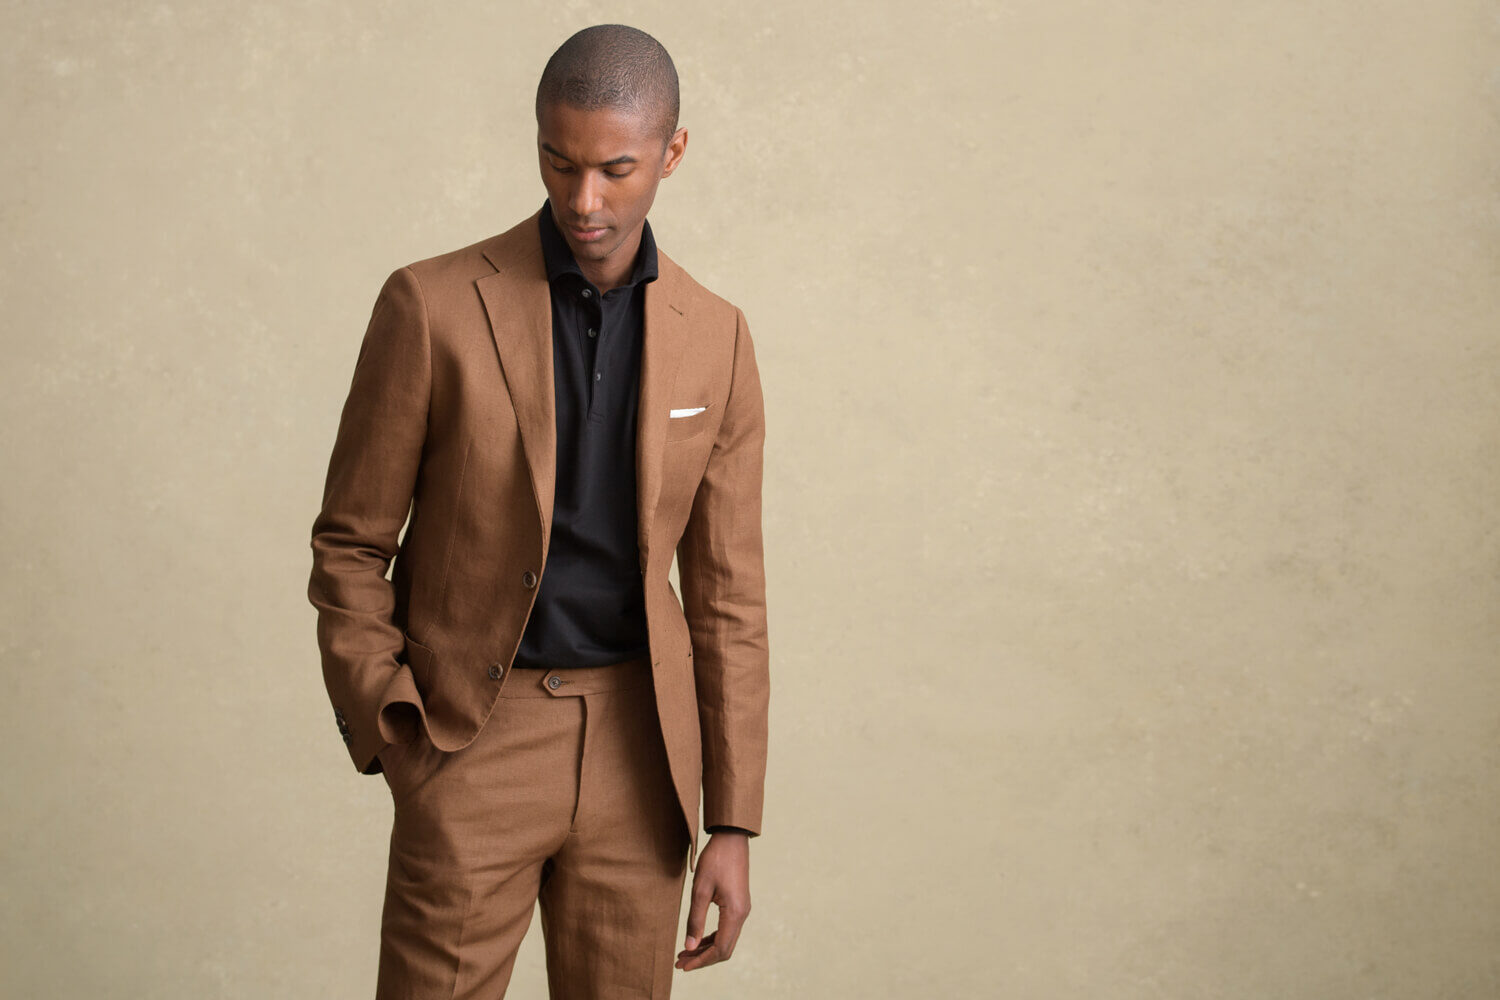 Look: The Tobacco Suit